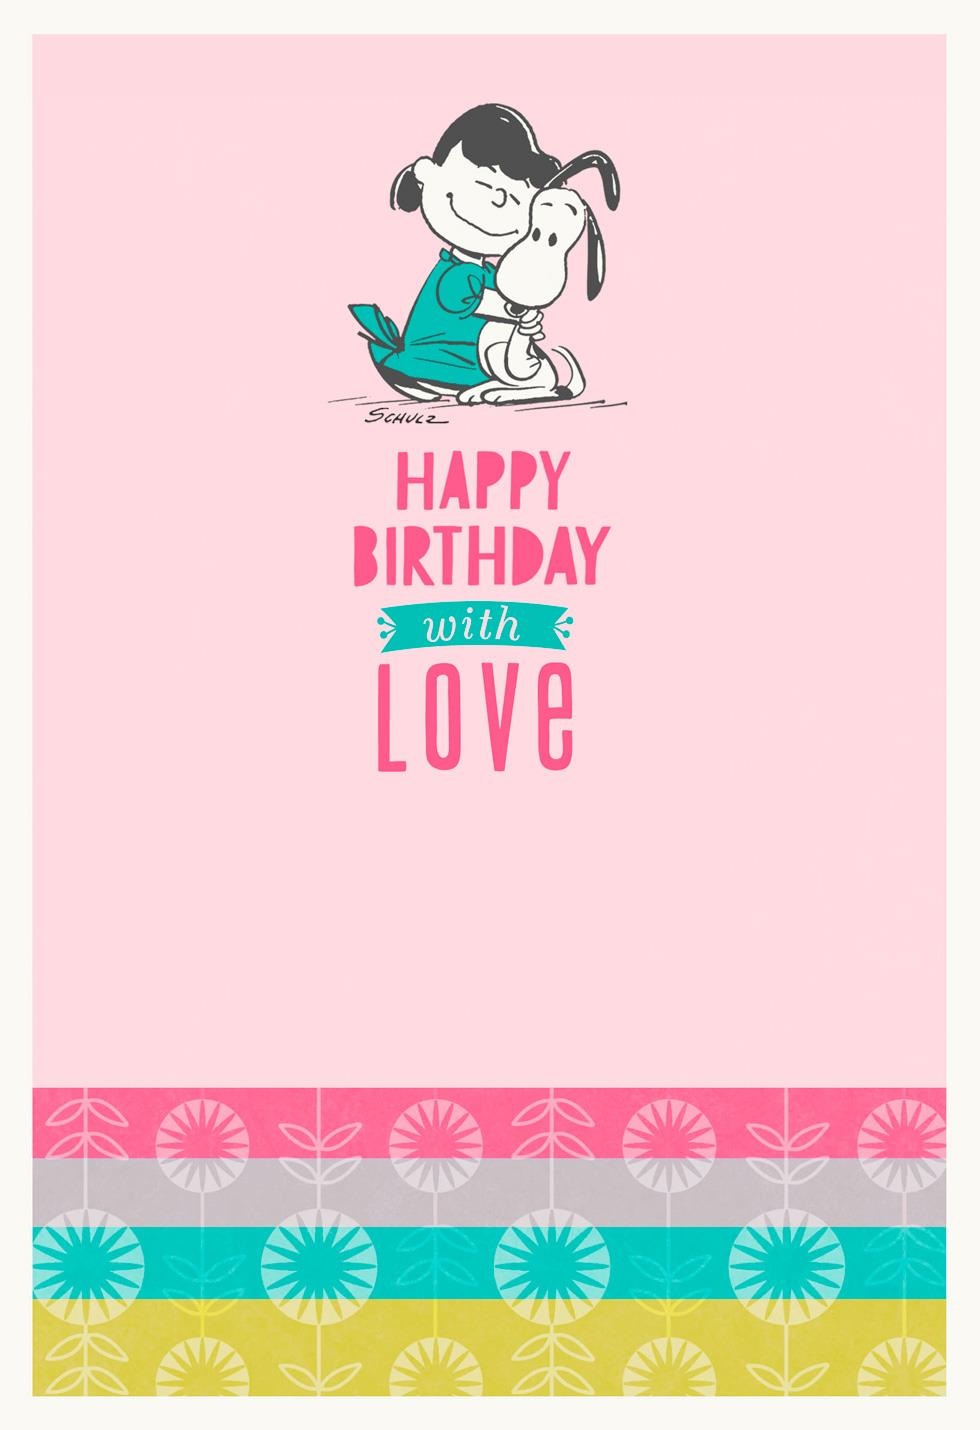 Peanuts Snoopy And Lucy Hug Birthday Card Greeting